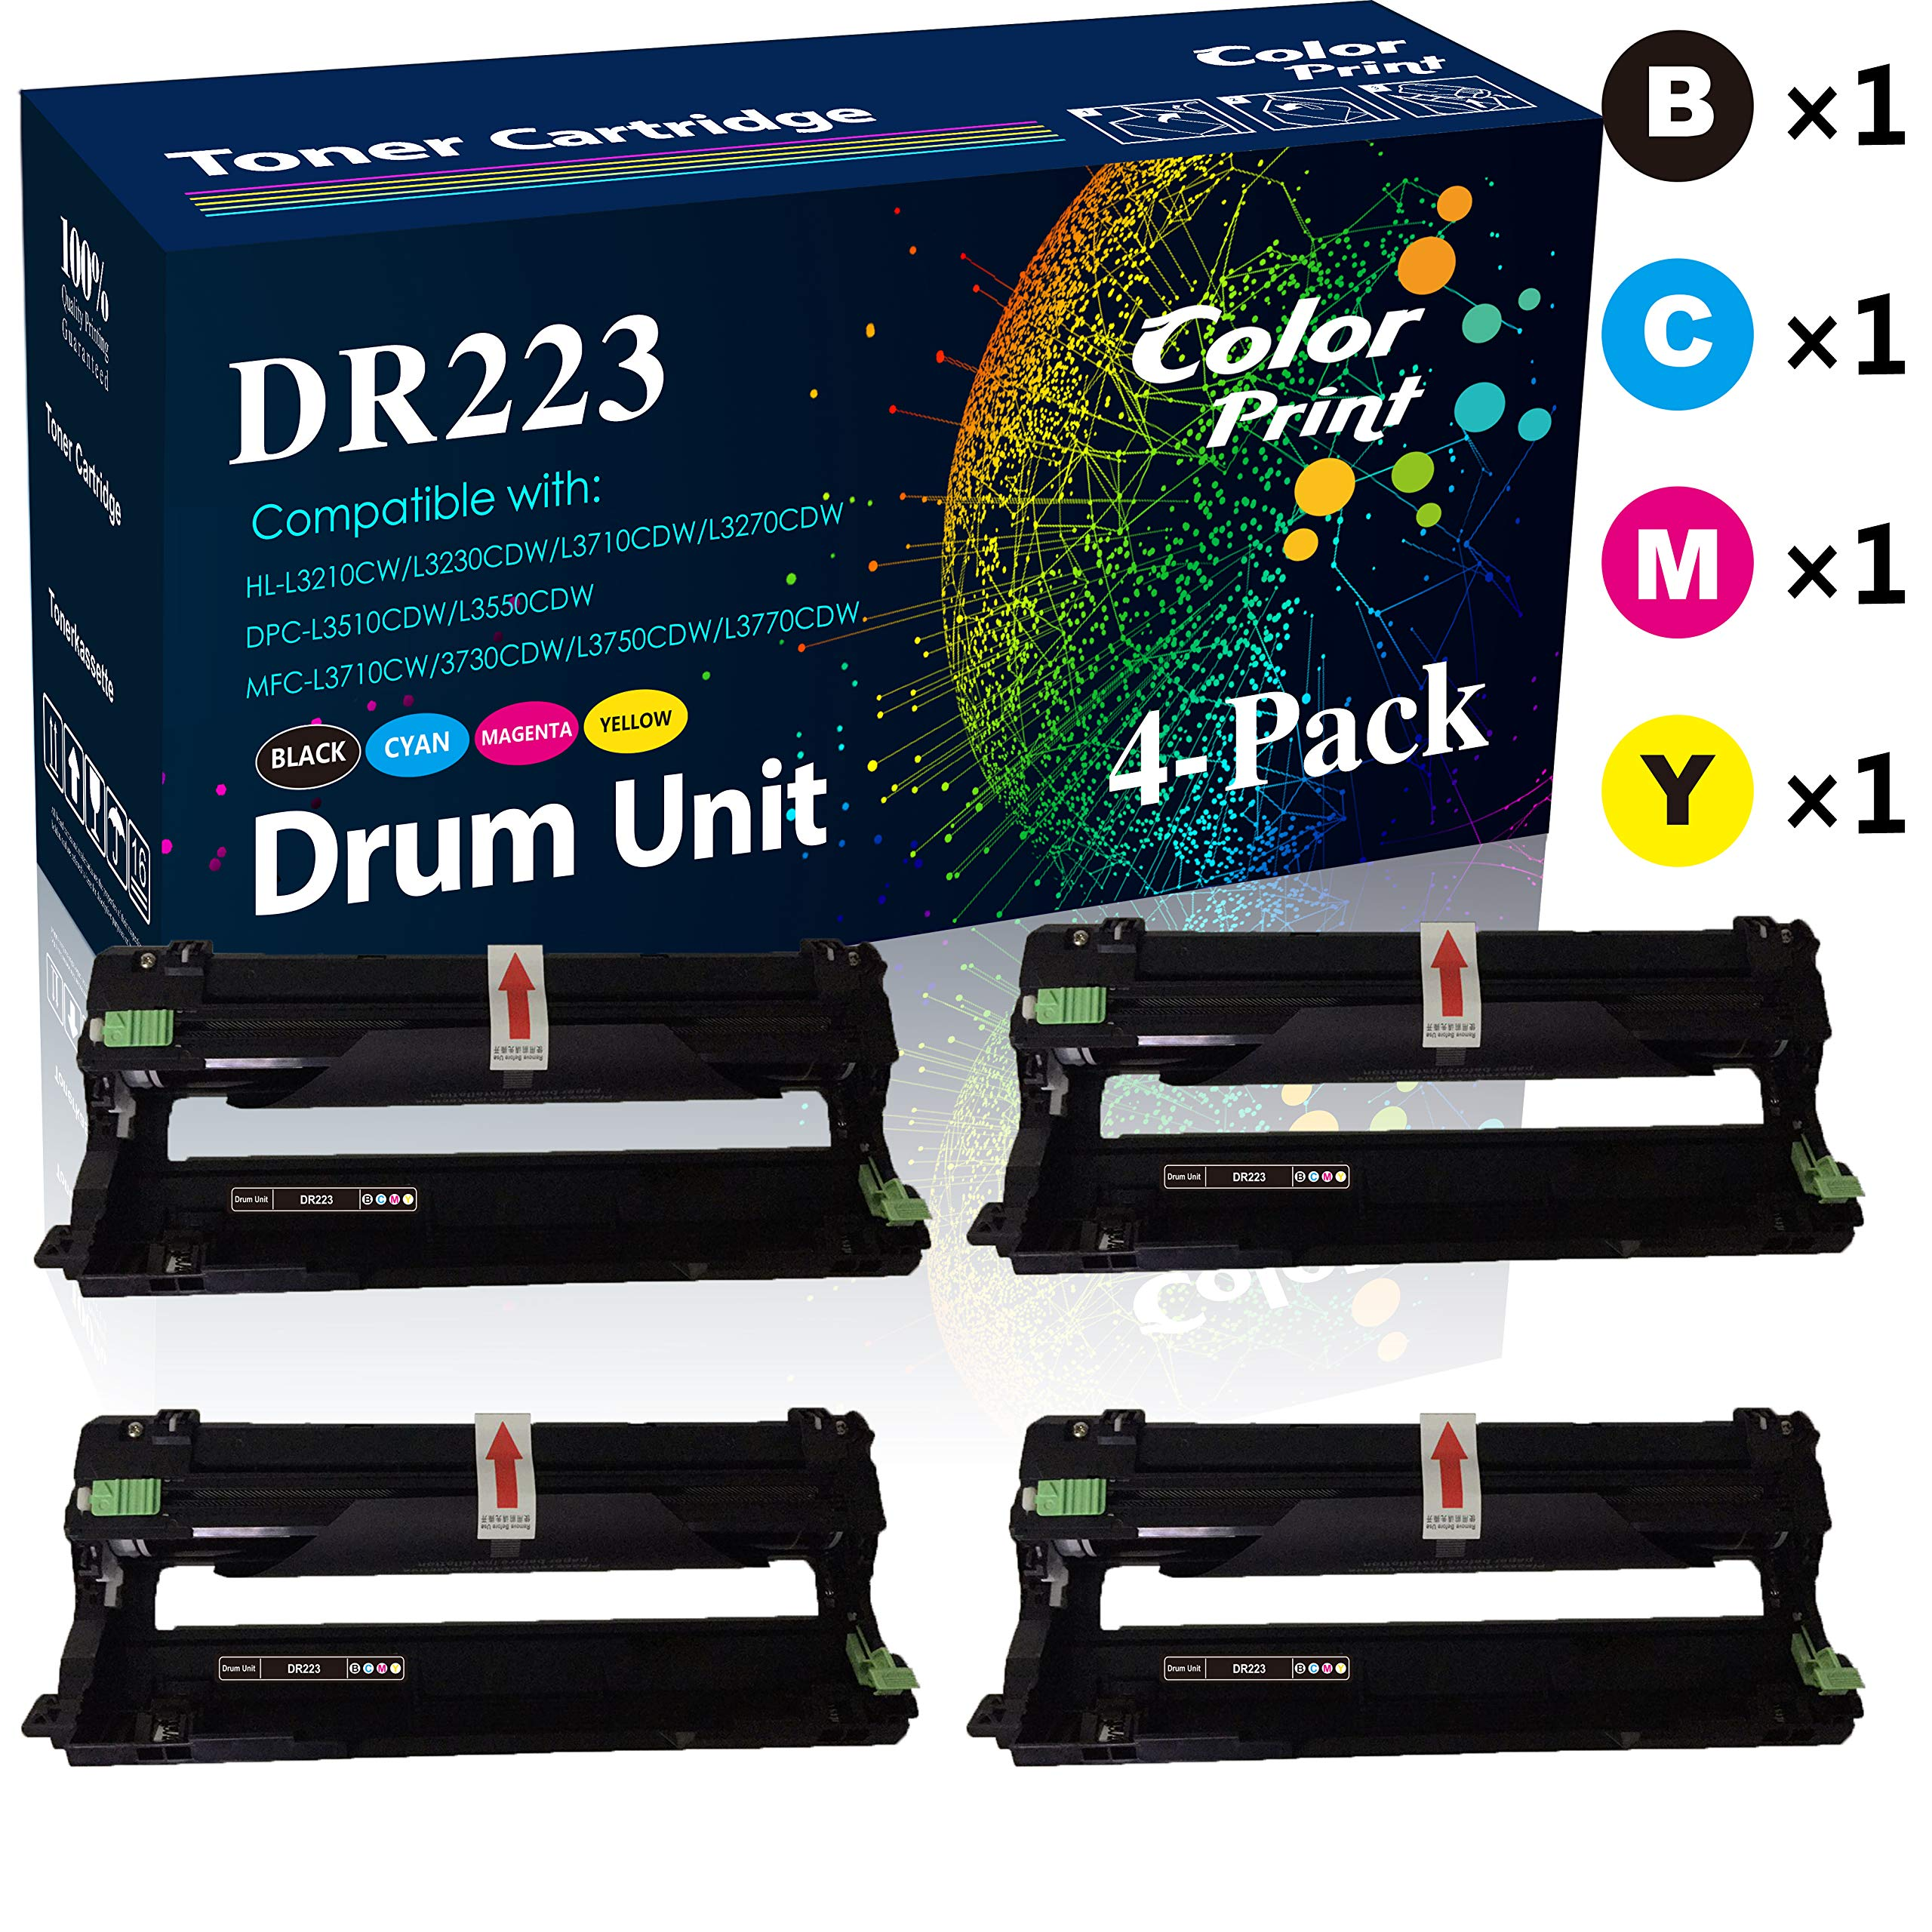 2-Pack Yellow Compatible Drum Unit Replacement for Brother DR223CL DR223 DR-223 use with MFC-L3770CDW MFC-L3750CDW HL-L3230CDW HL-L3290CDW HL-L3210CW MFC-L3710CW Printer